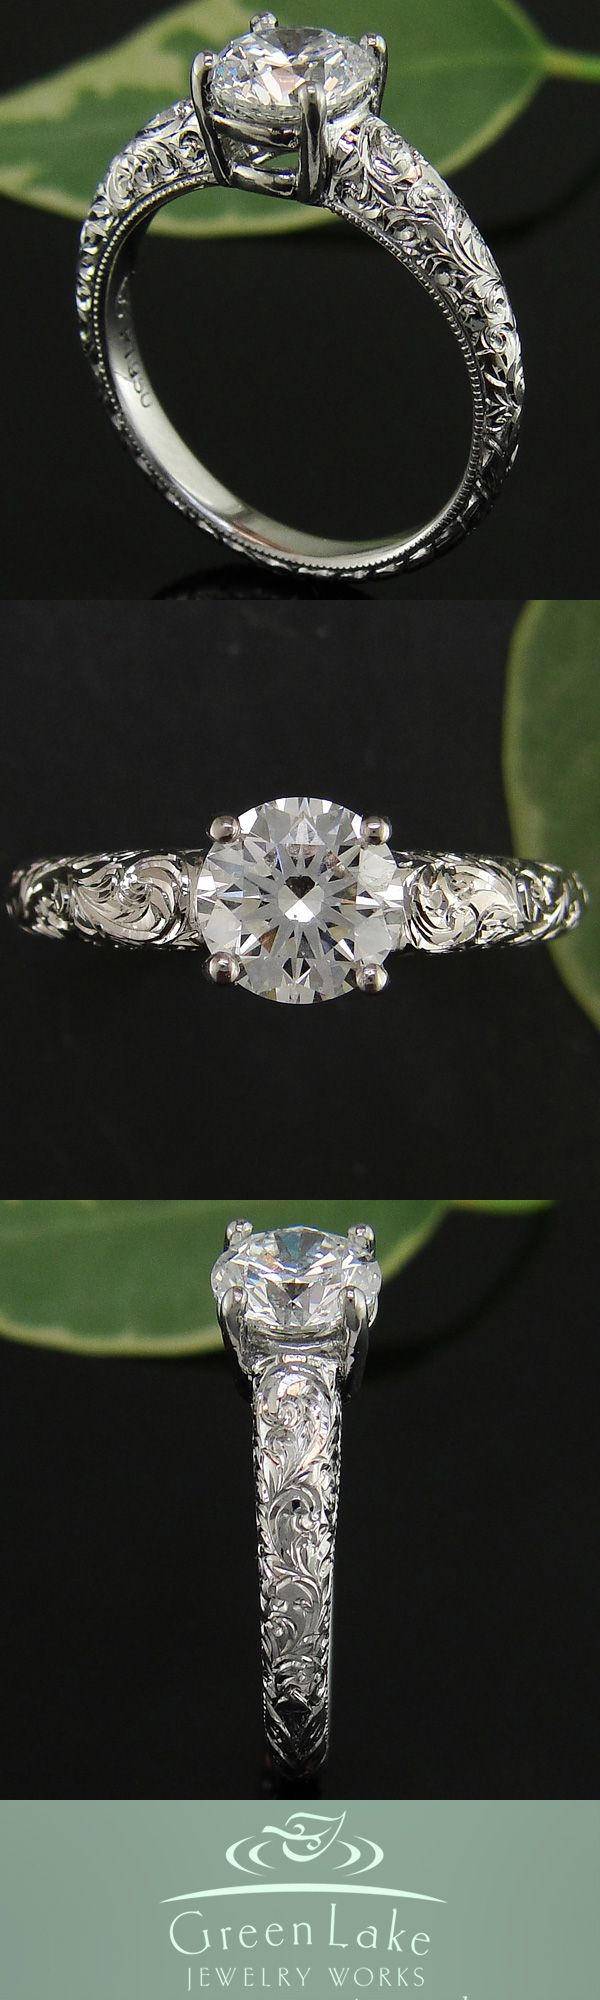 Hand Engraved Platinum Ring With Brilliantcut Center Diamond